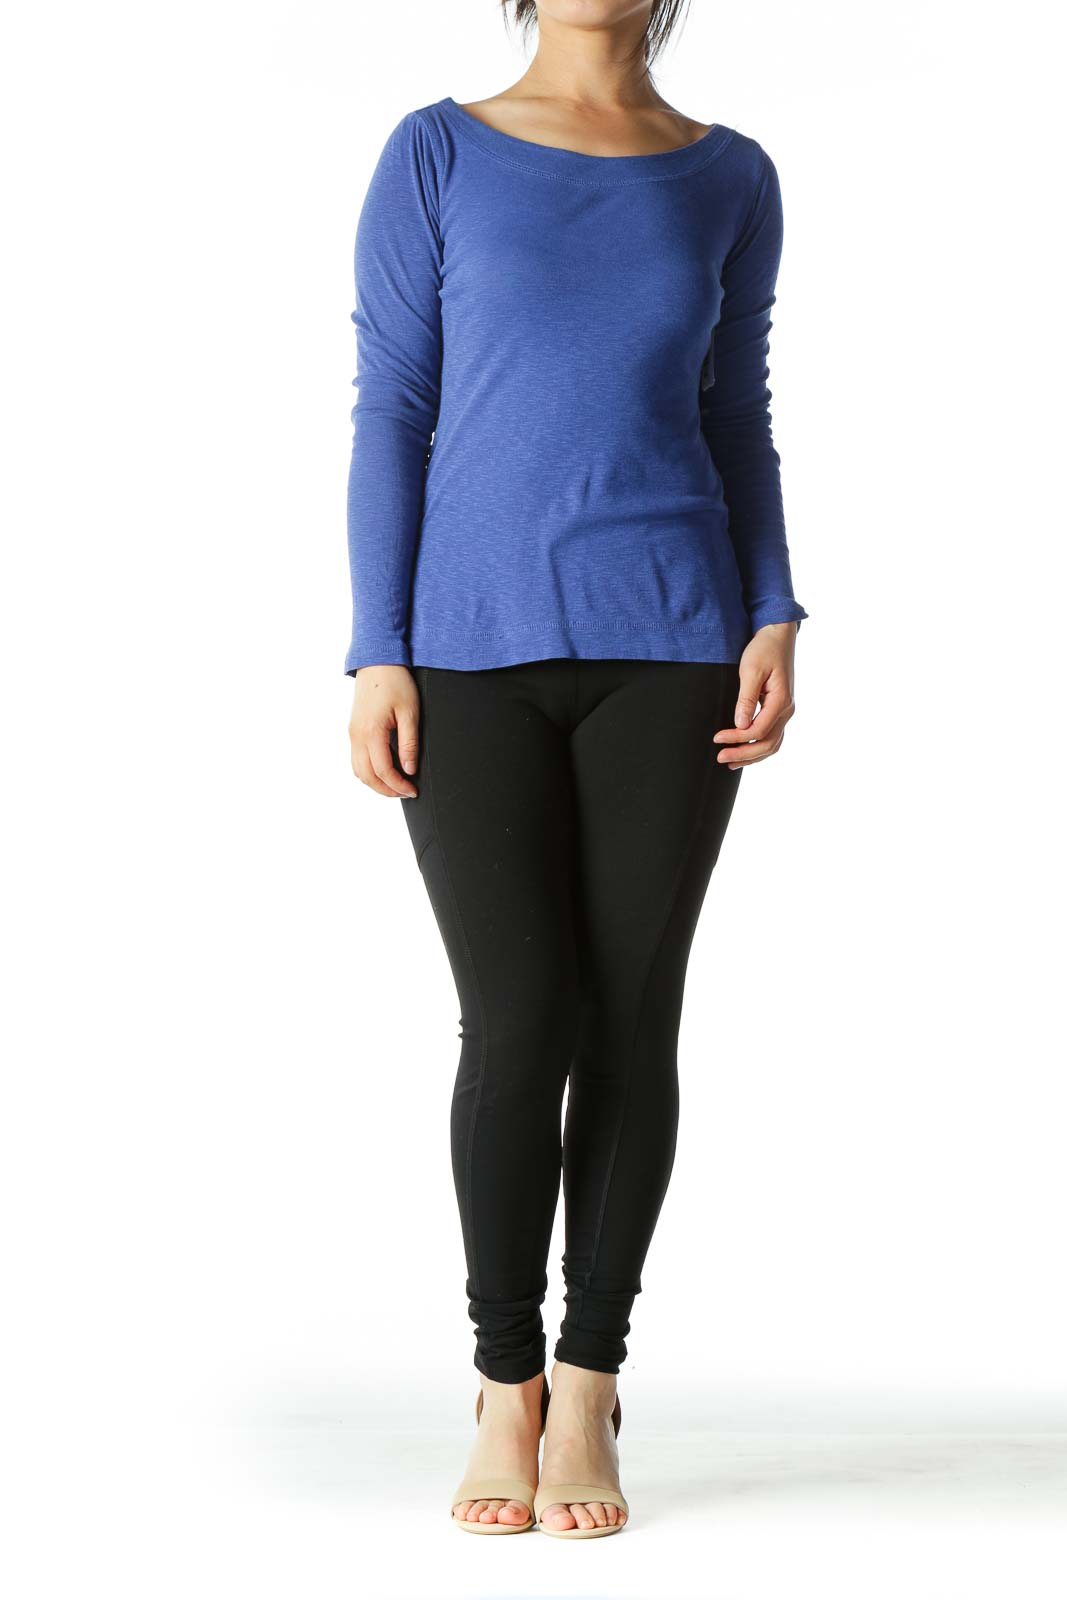 Royal Blue Boat Neck Long Sleeve Knit